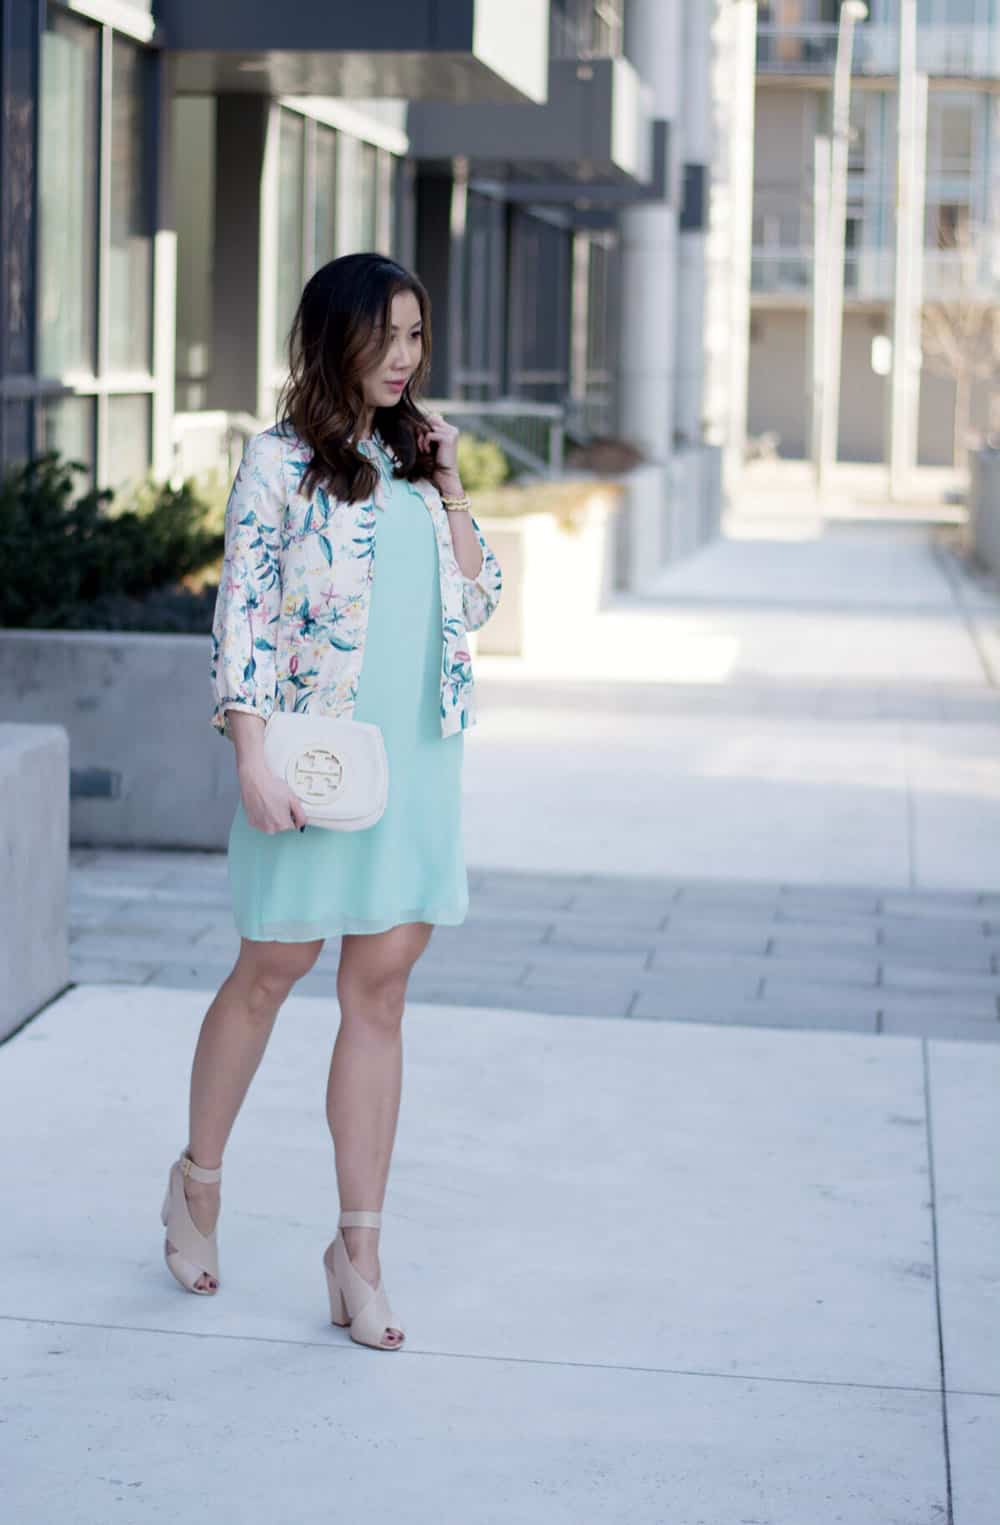 Summer lookbook: Spring dress and floral bomber from LC Lauren Conrad Dress Up Shop